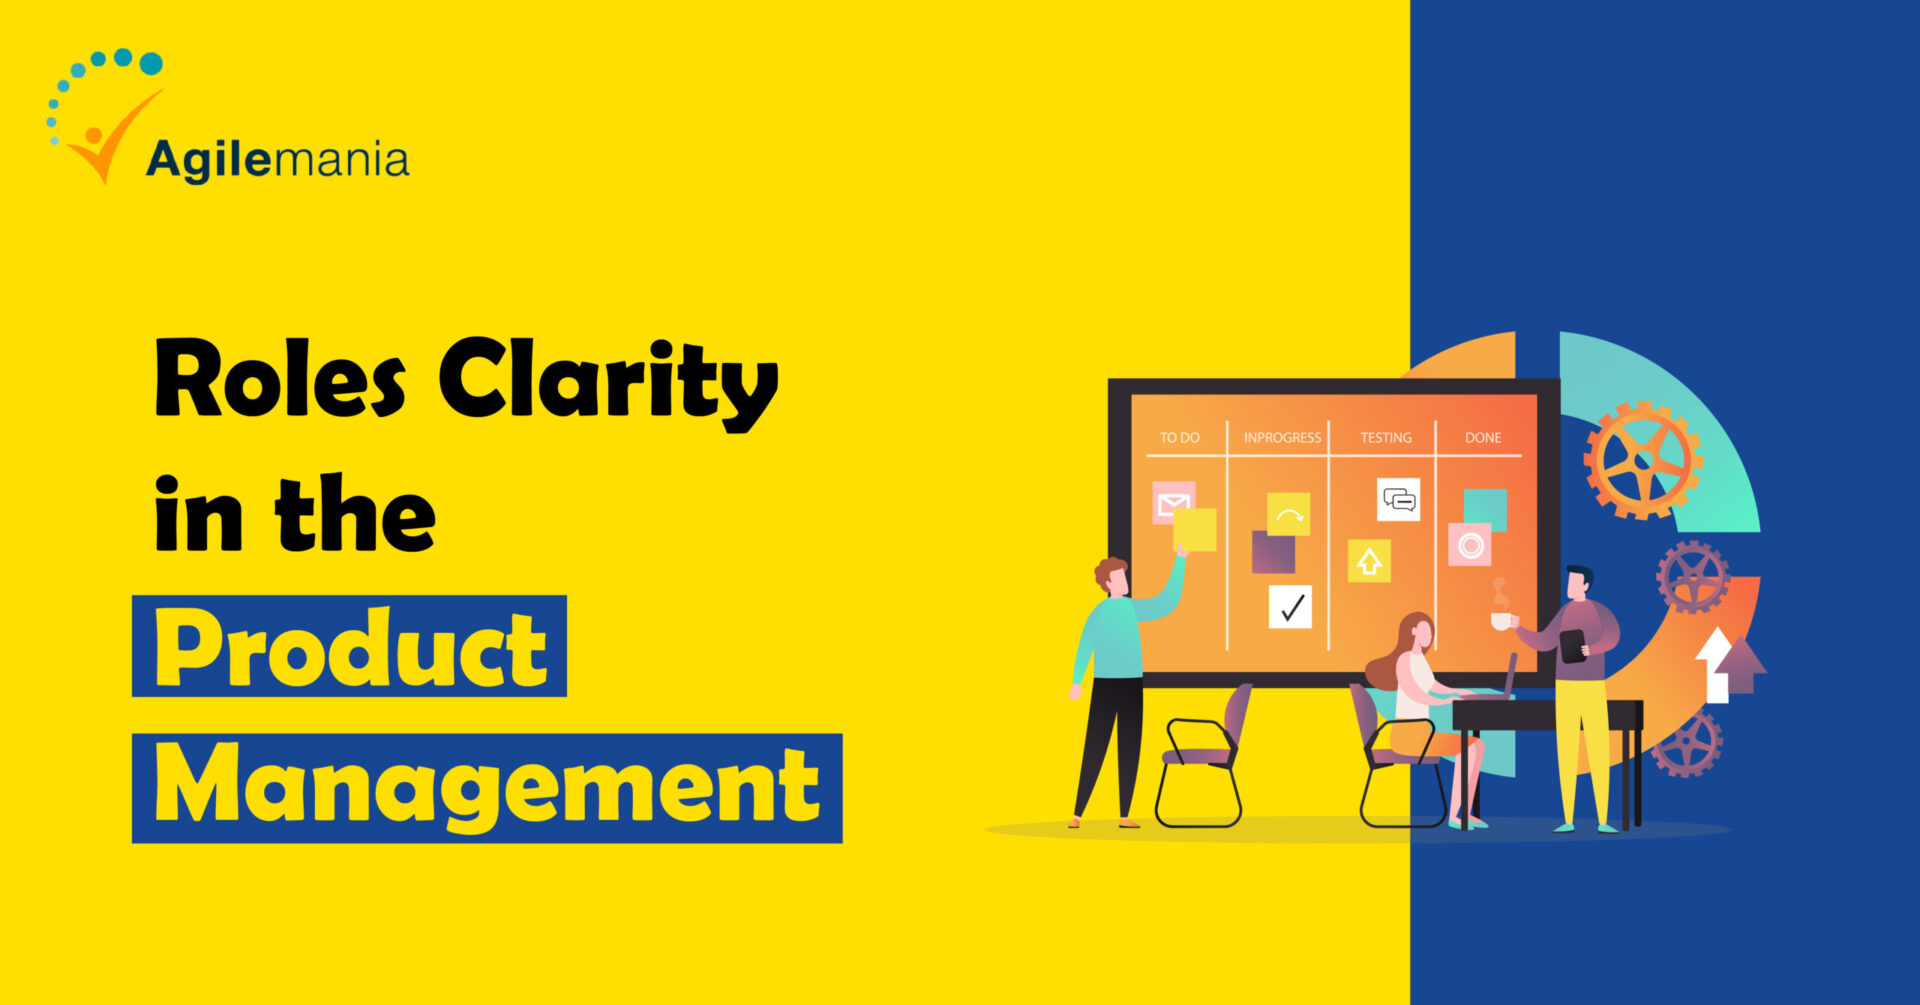 Roles-Clarity-in-the-Product-Managemen-scaled